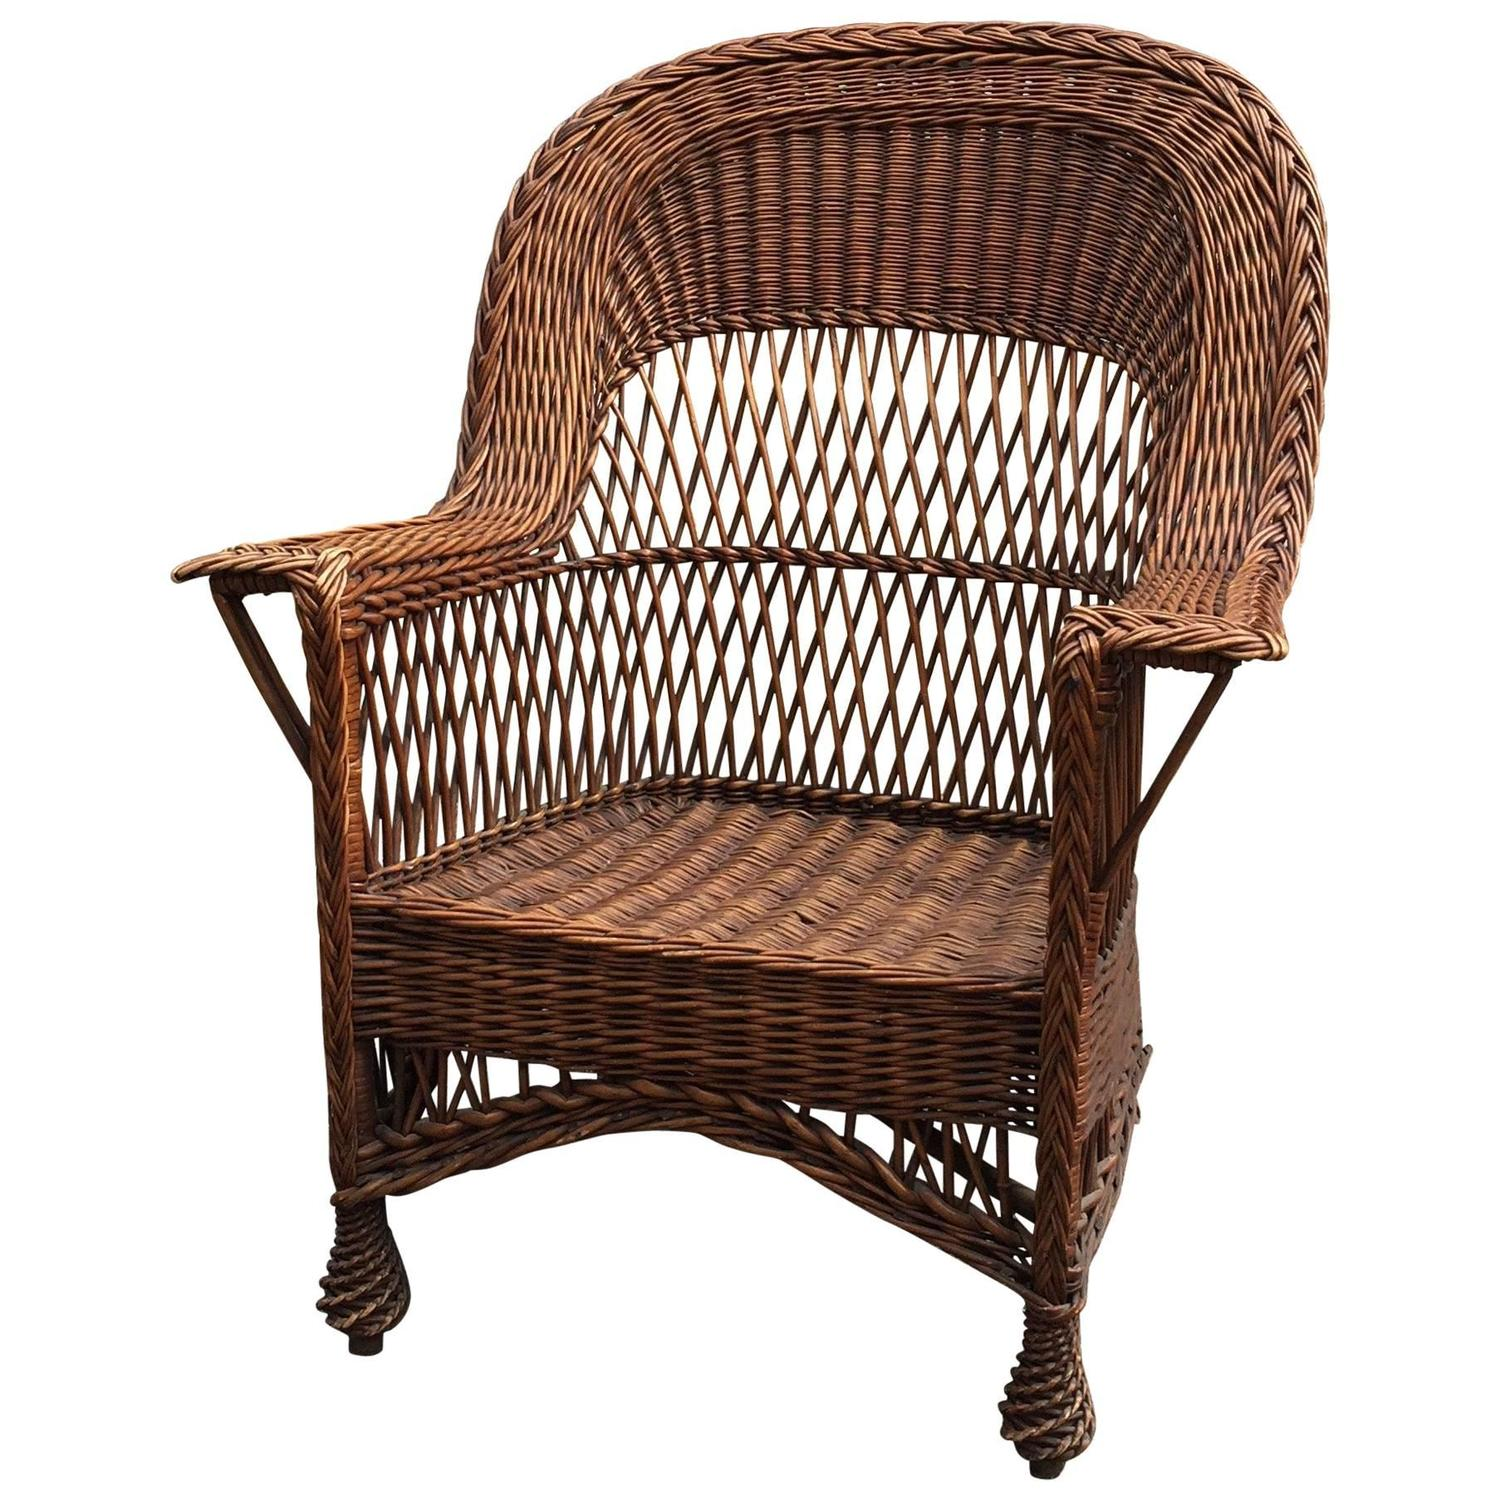 Antique Willow Wicker Chair - Vintage Wicker Veranda Chair With African Mudcloth Cushion For